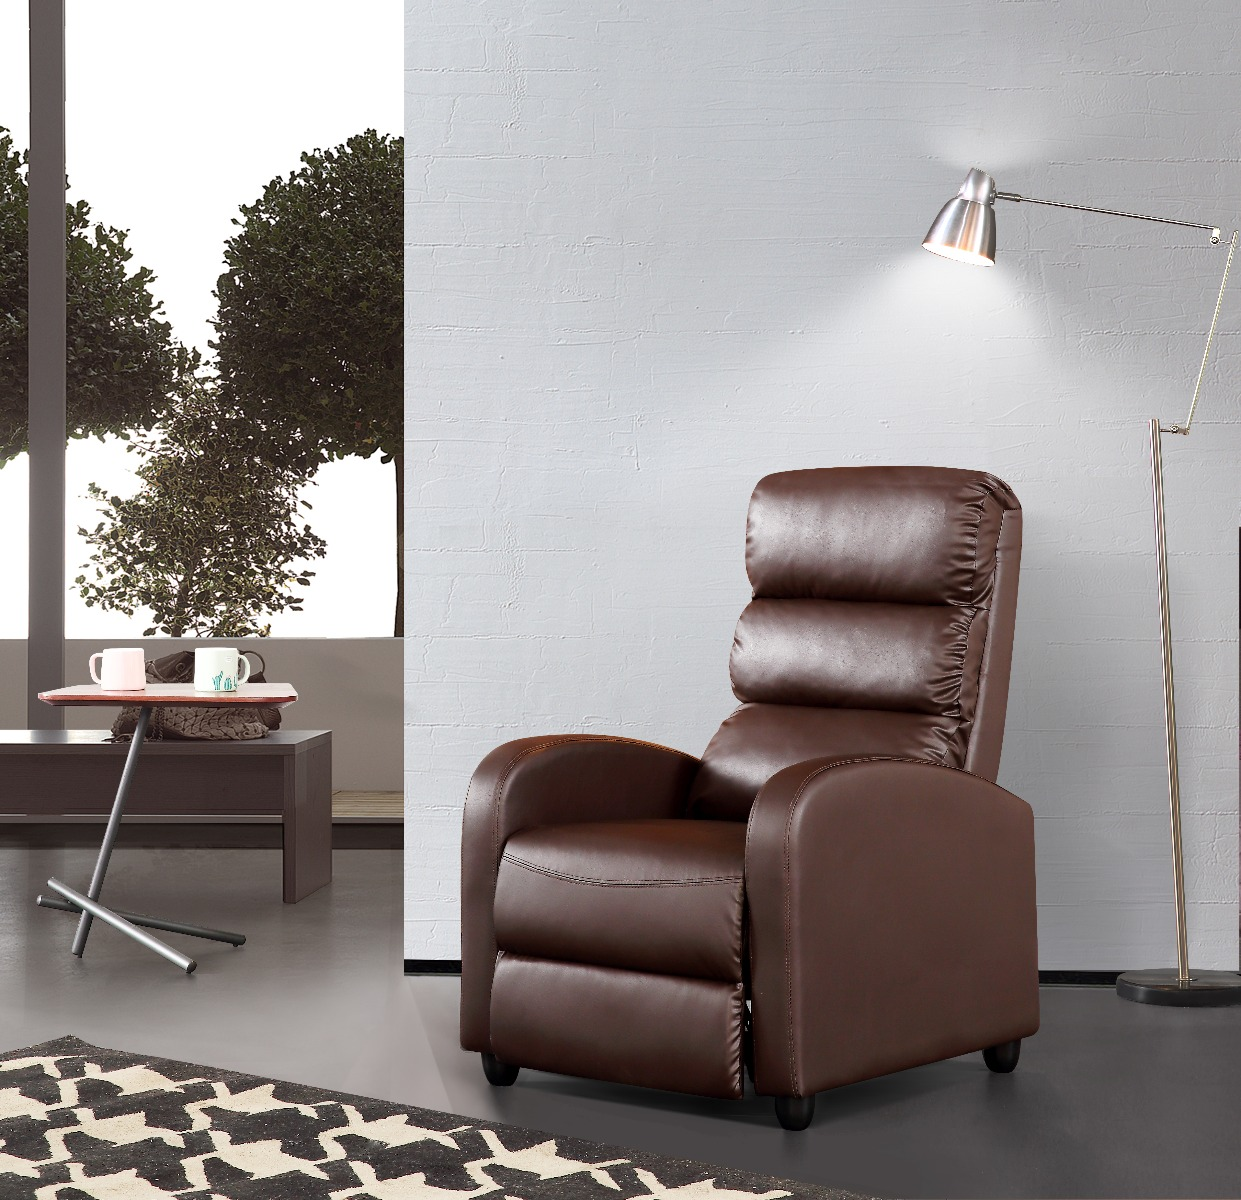 Luxury Leather Recliner Chair Armchair - Brown